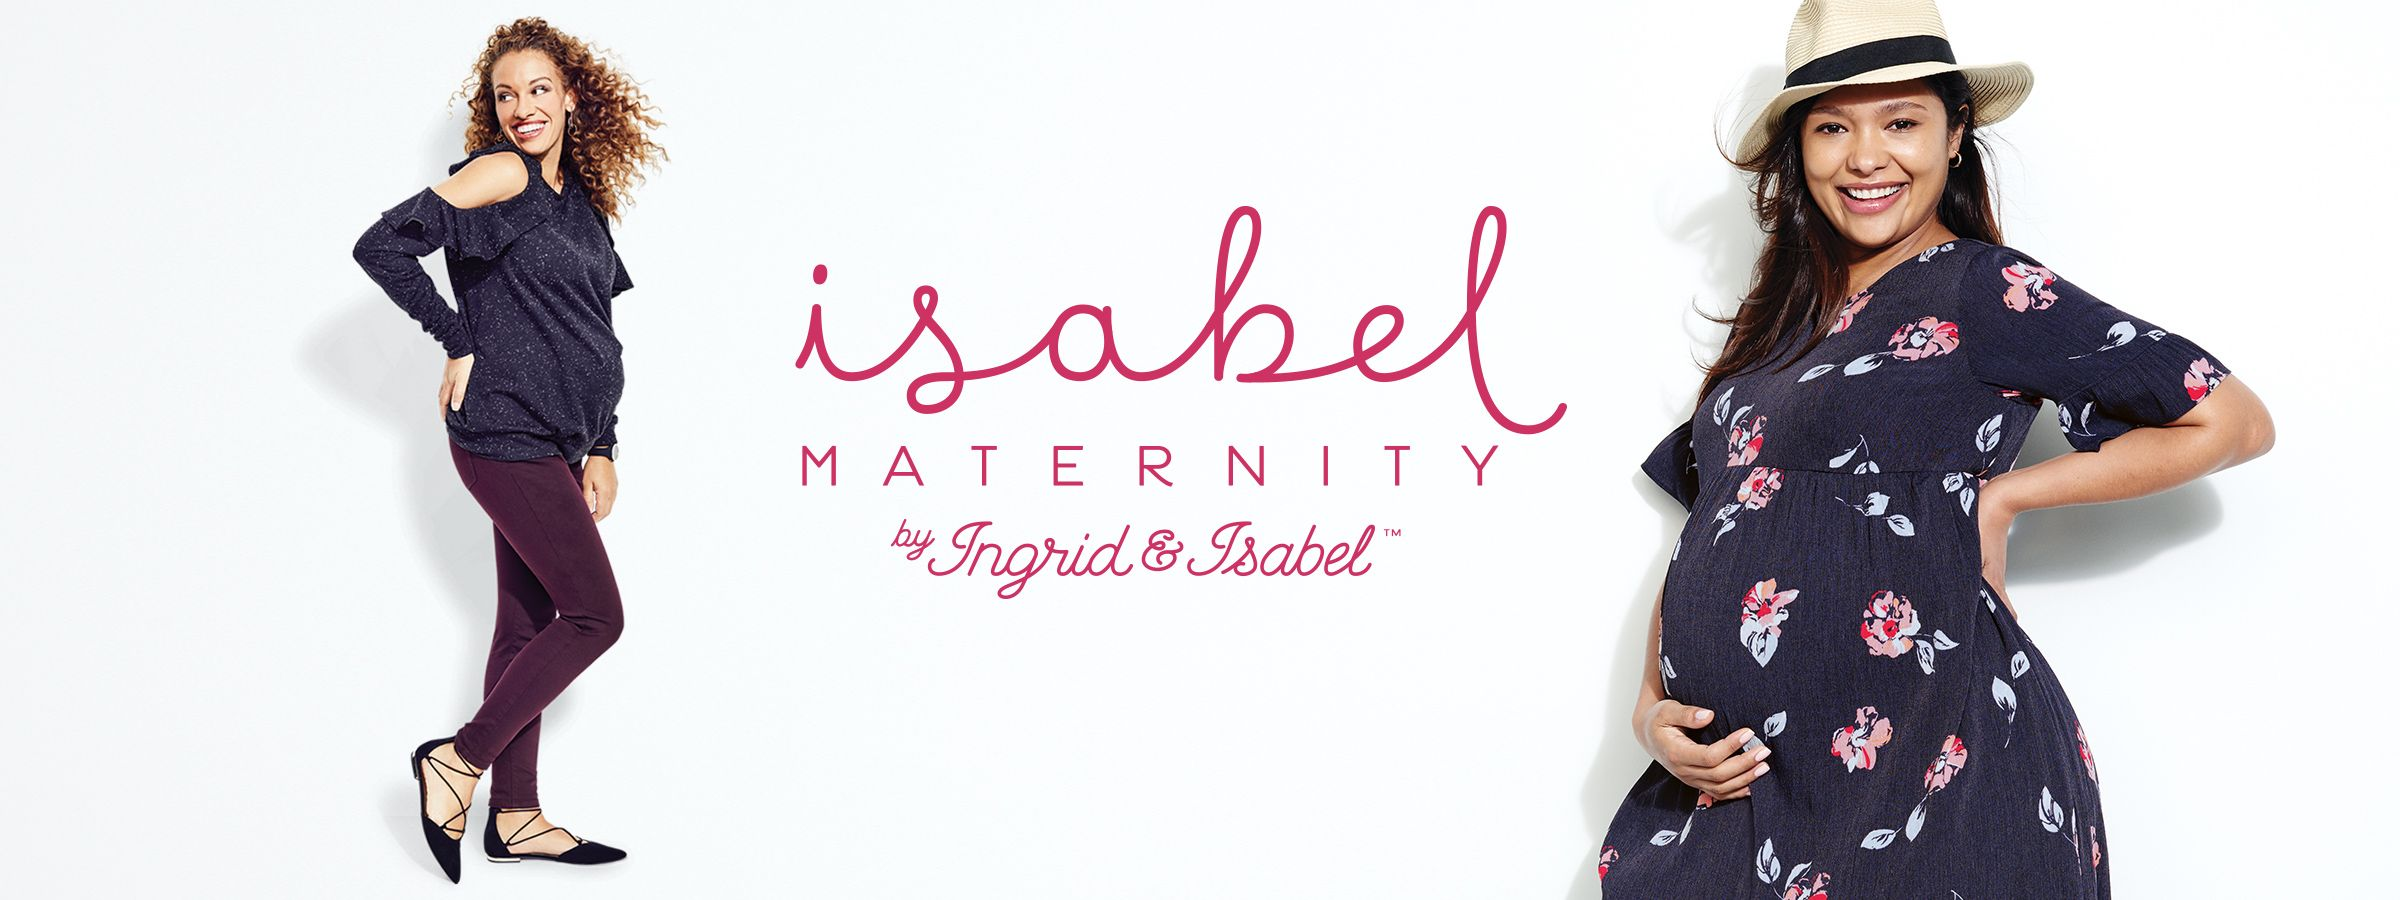 Dresses isabel maternity by ingrid isabel target targetclothingwomens clothingmaternitydresses isabel maternity by ingrid isabel 39 ombrellifo Images